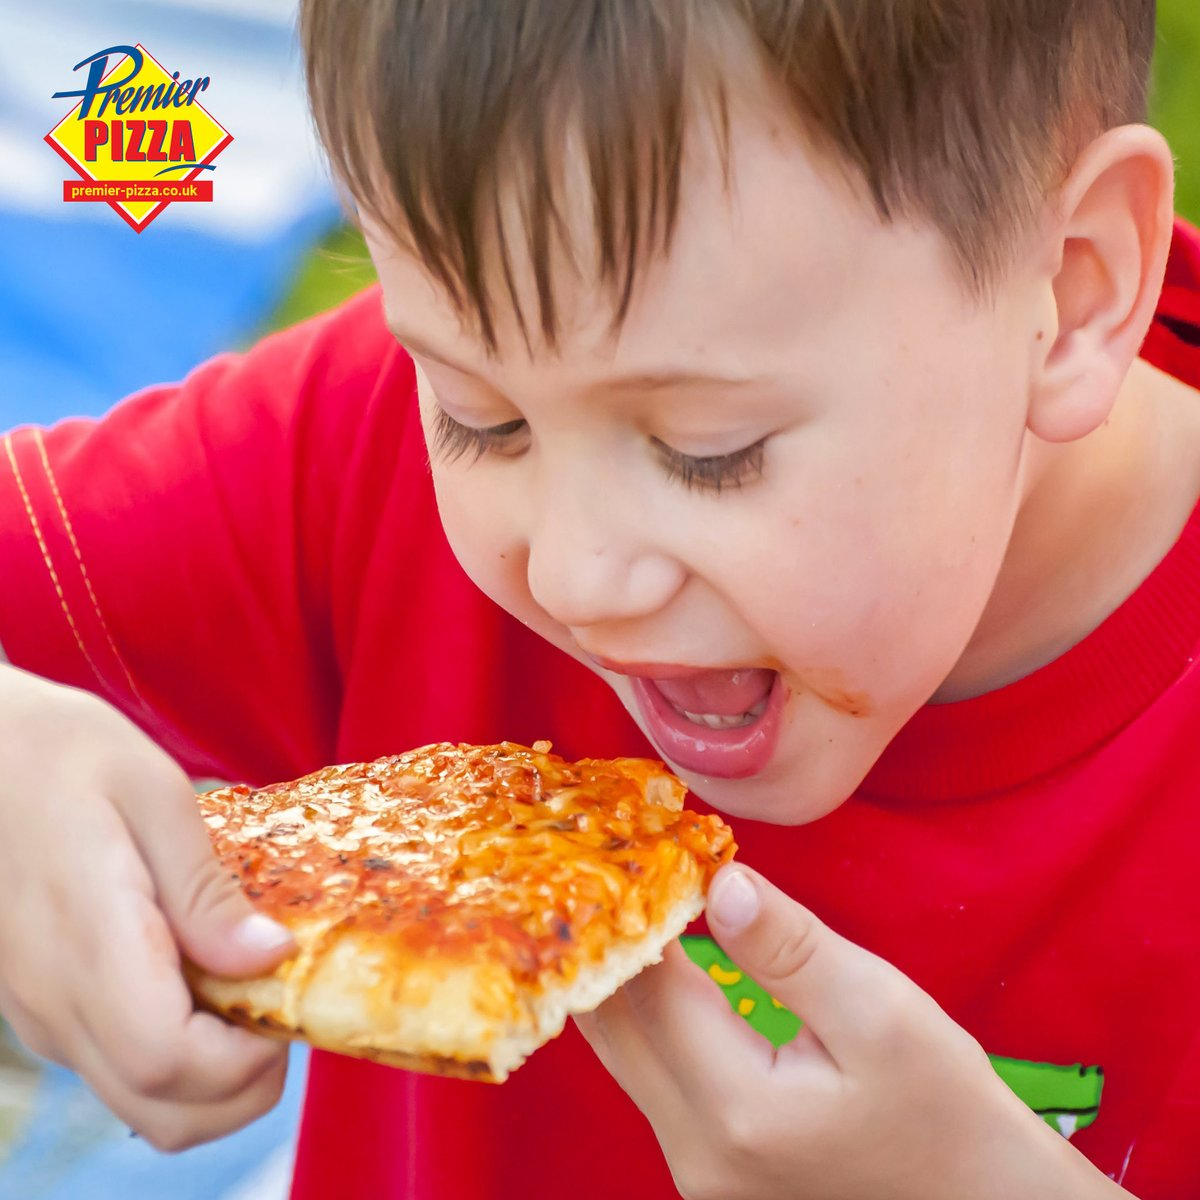 """Stafford Branch:  Kids Meal 6"""" Pizza with a choice of 3 toppings 3 Chicken Nuggets or 3 Mozzarella Sticks Fruit Shoot Only £5 https://t.co/9fNz286wPC . . . . . #premierpizza #westmidlands #stafford #pizza #Bilston https://t.co/NeWtHbWzYI"""